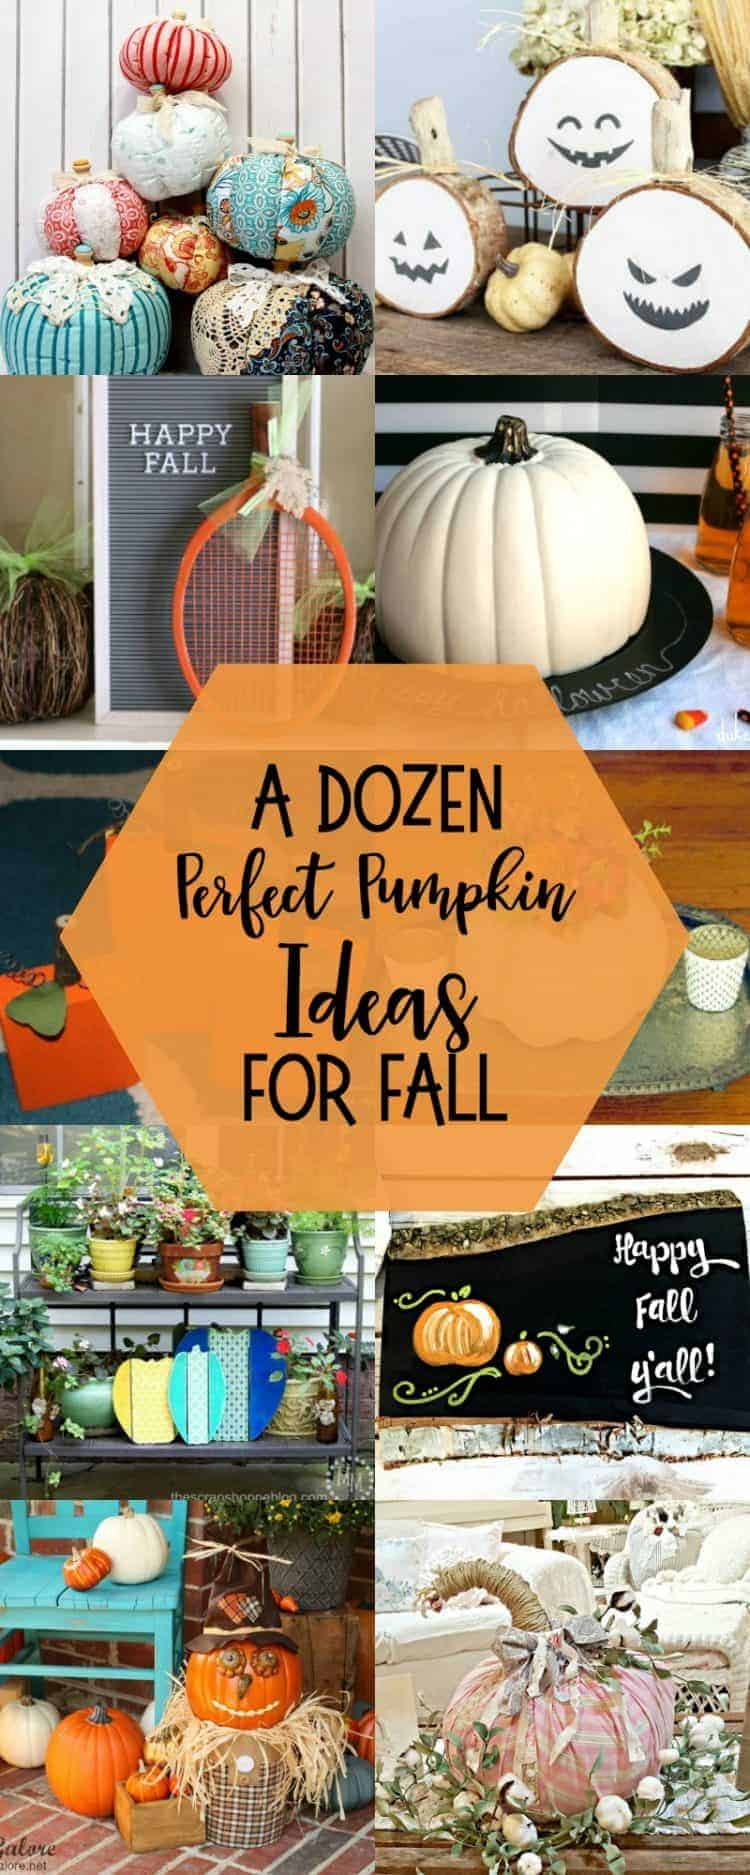 12 perfect adorable pumpkin ideas for fall